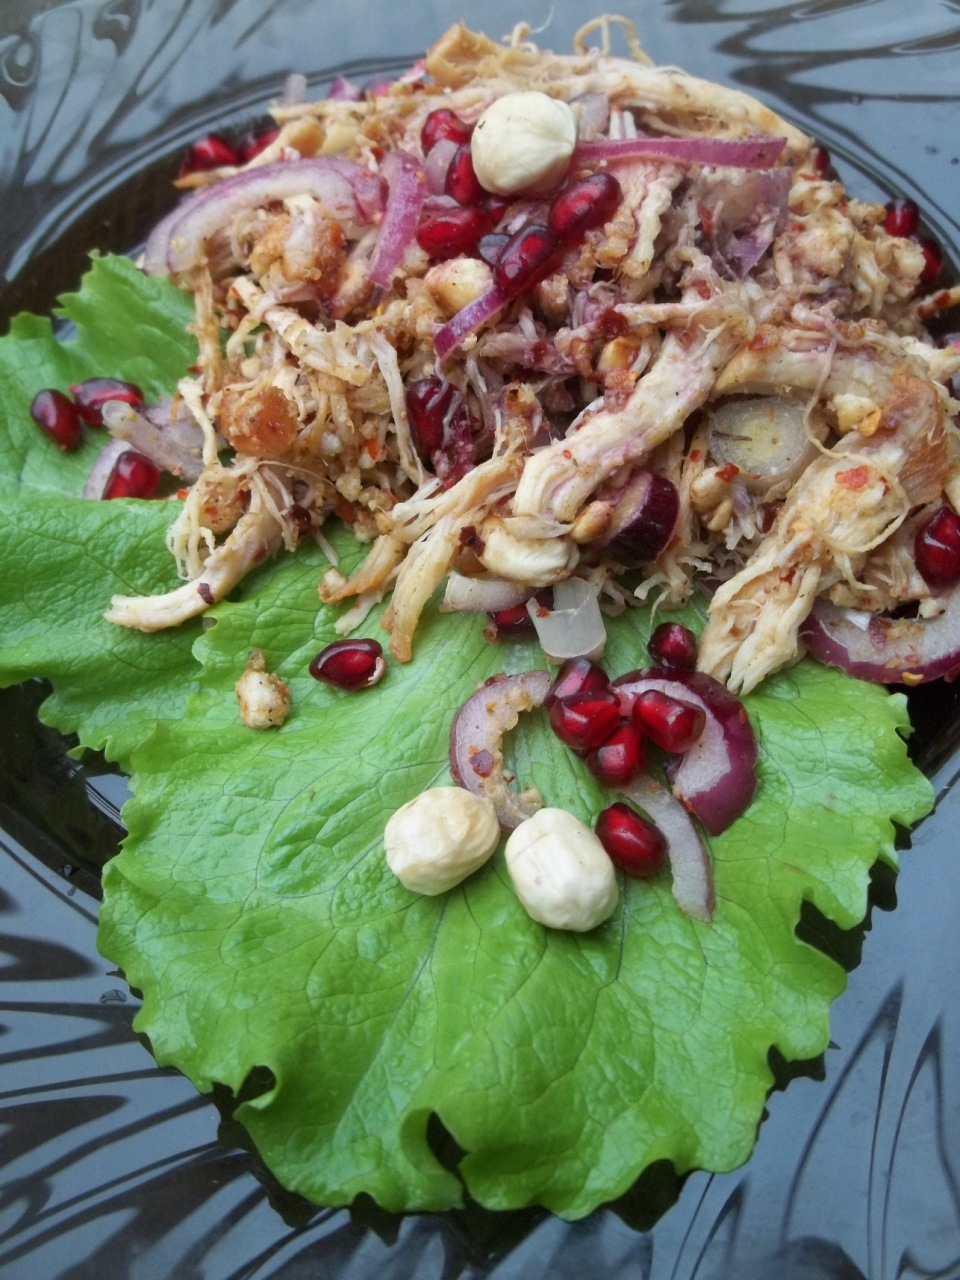 Chicken Salad with Hazelnuts and Pomegranate Sauce ready for serving - Copy